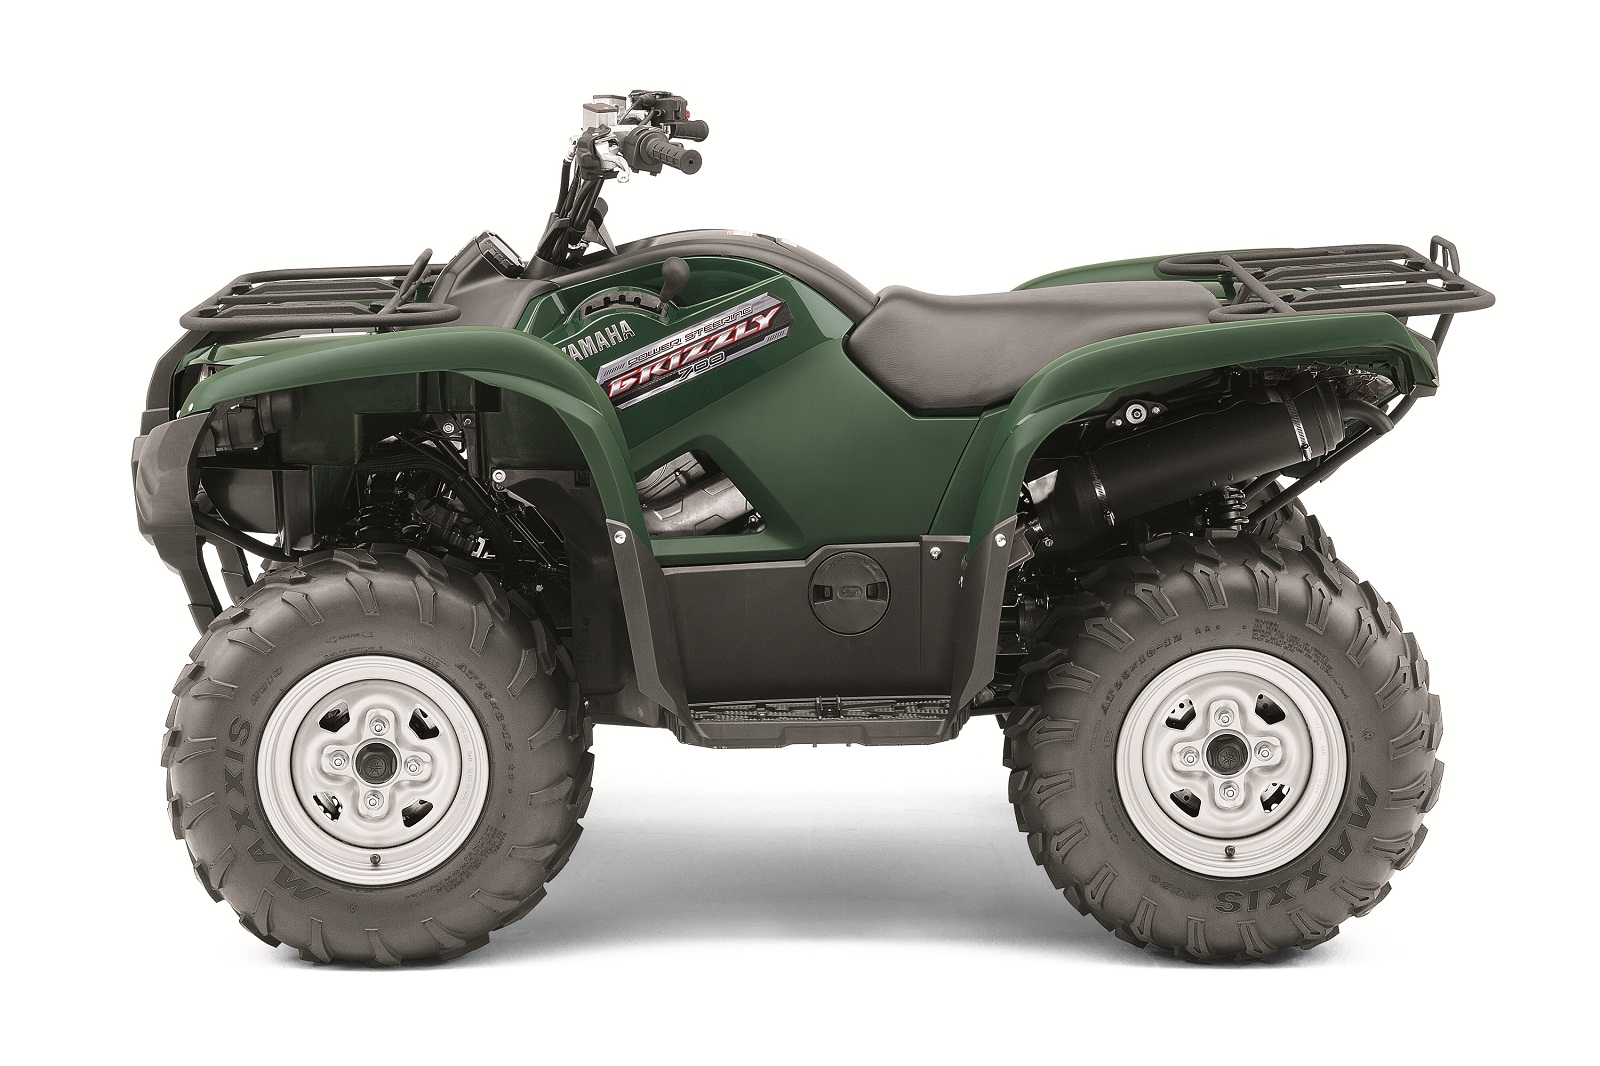 2012 yamaha grizzly 700 fi auto 4x4 eps review top speed. Black Bedroom Furniture Sets. Home Design Ideas